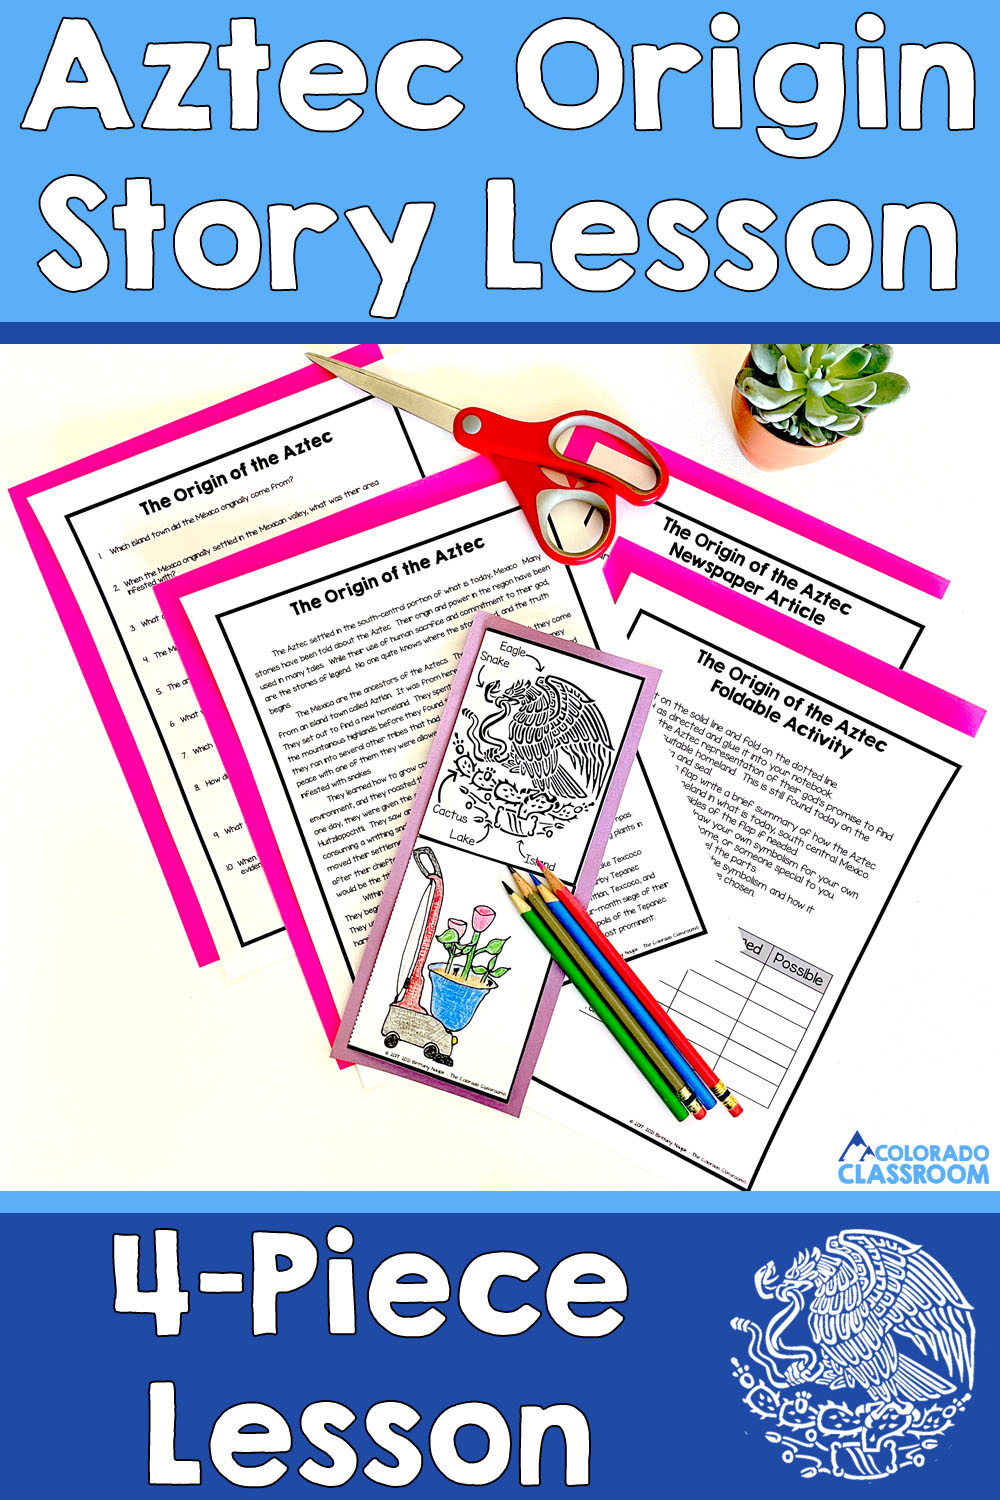 This image shows the Aztec Origin Story lesson with its four parts and a partially completed foldable activity.